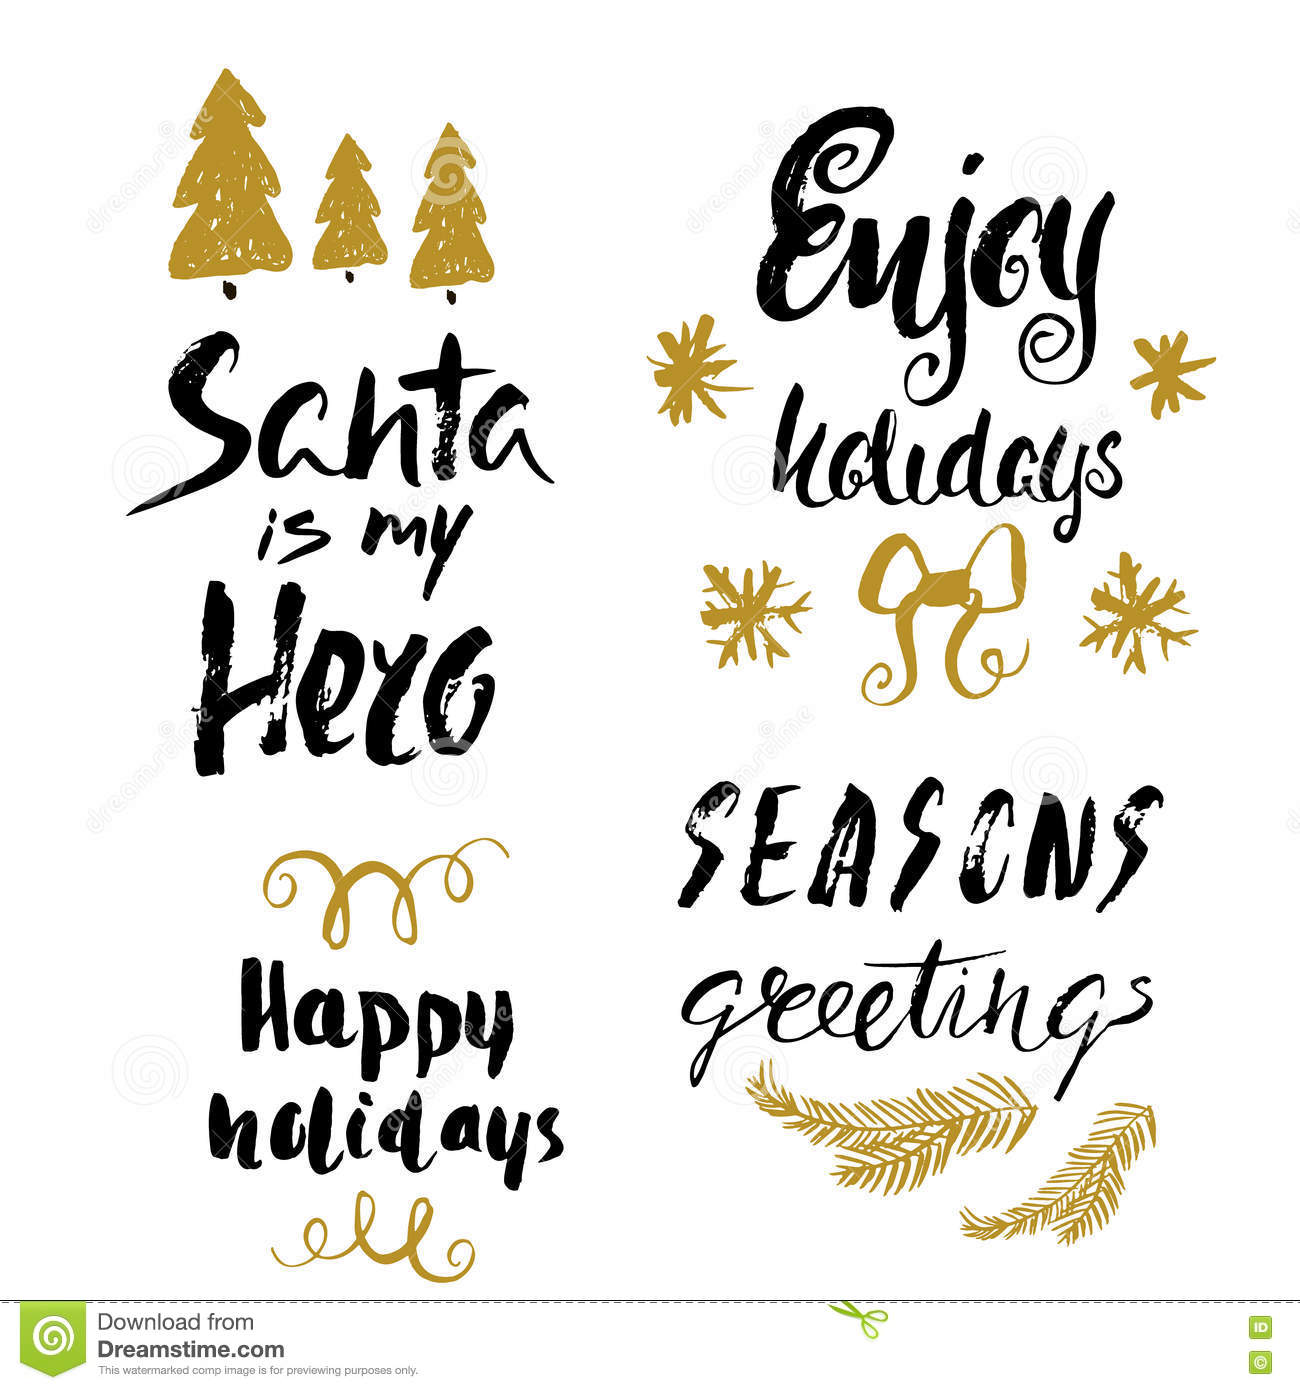 Hand drawn holiday lettering christmas collection of unique download hand drawn holiday lettering christmas collection of unique lettering for greeting cards stationary m4hsunfo